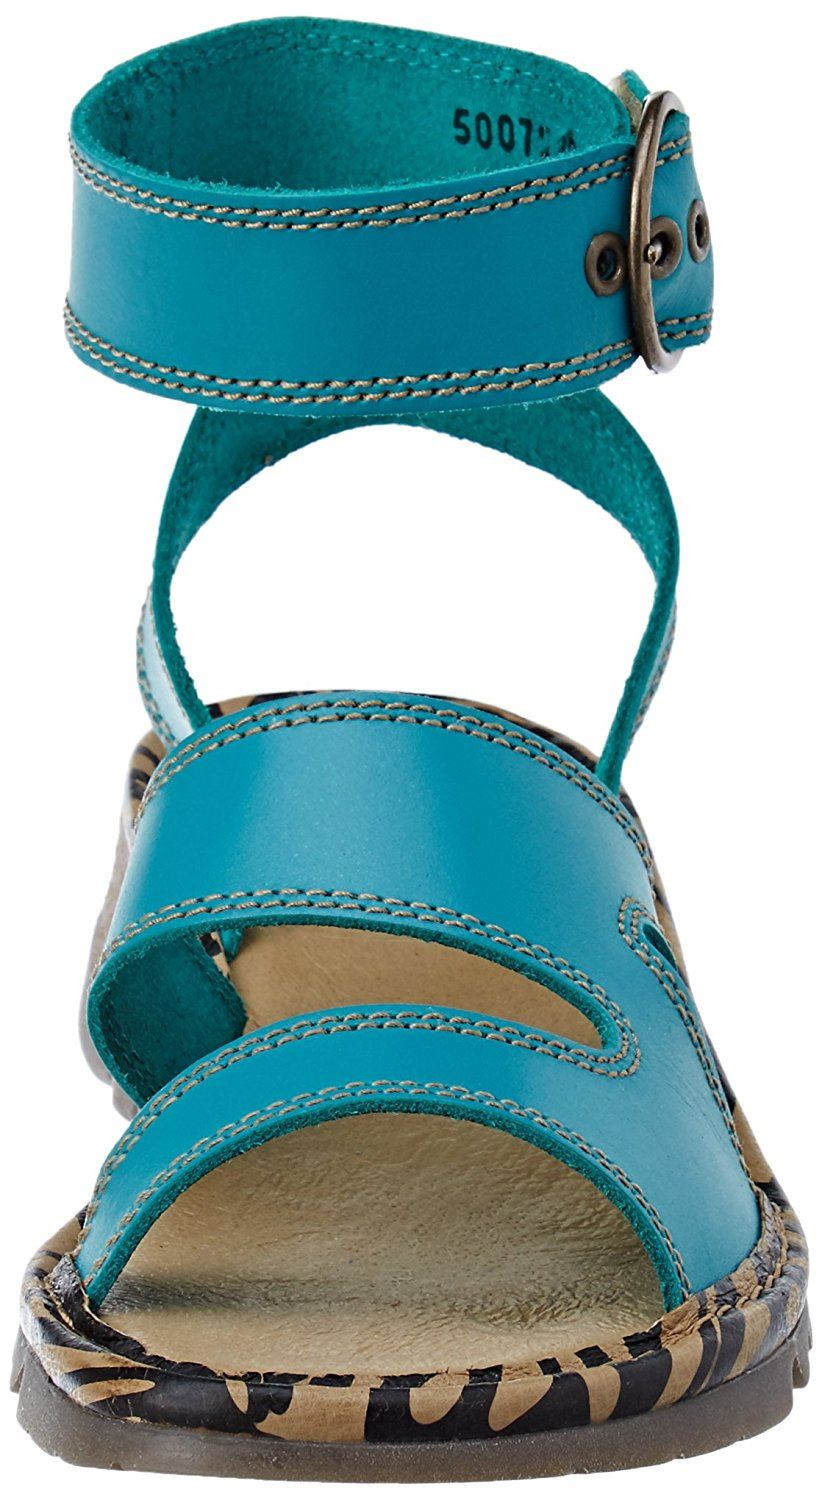 Fly-London-TILY722FLY-Ladies-Strappy-Gladiator-Style-Leather-Wedge-Sandals thumbnail 24